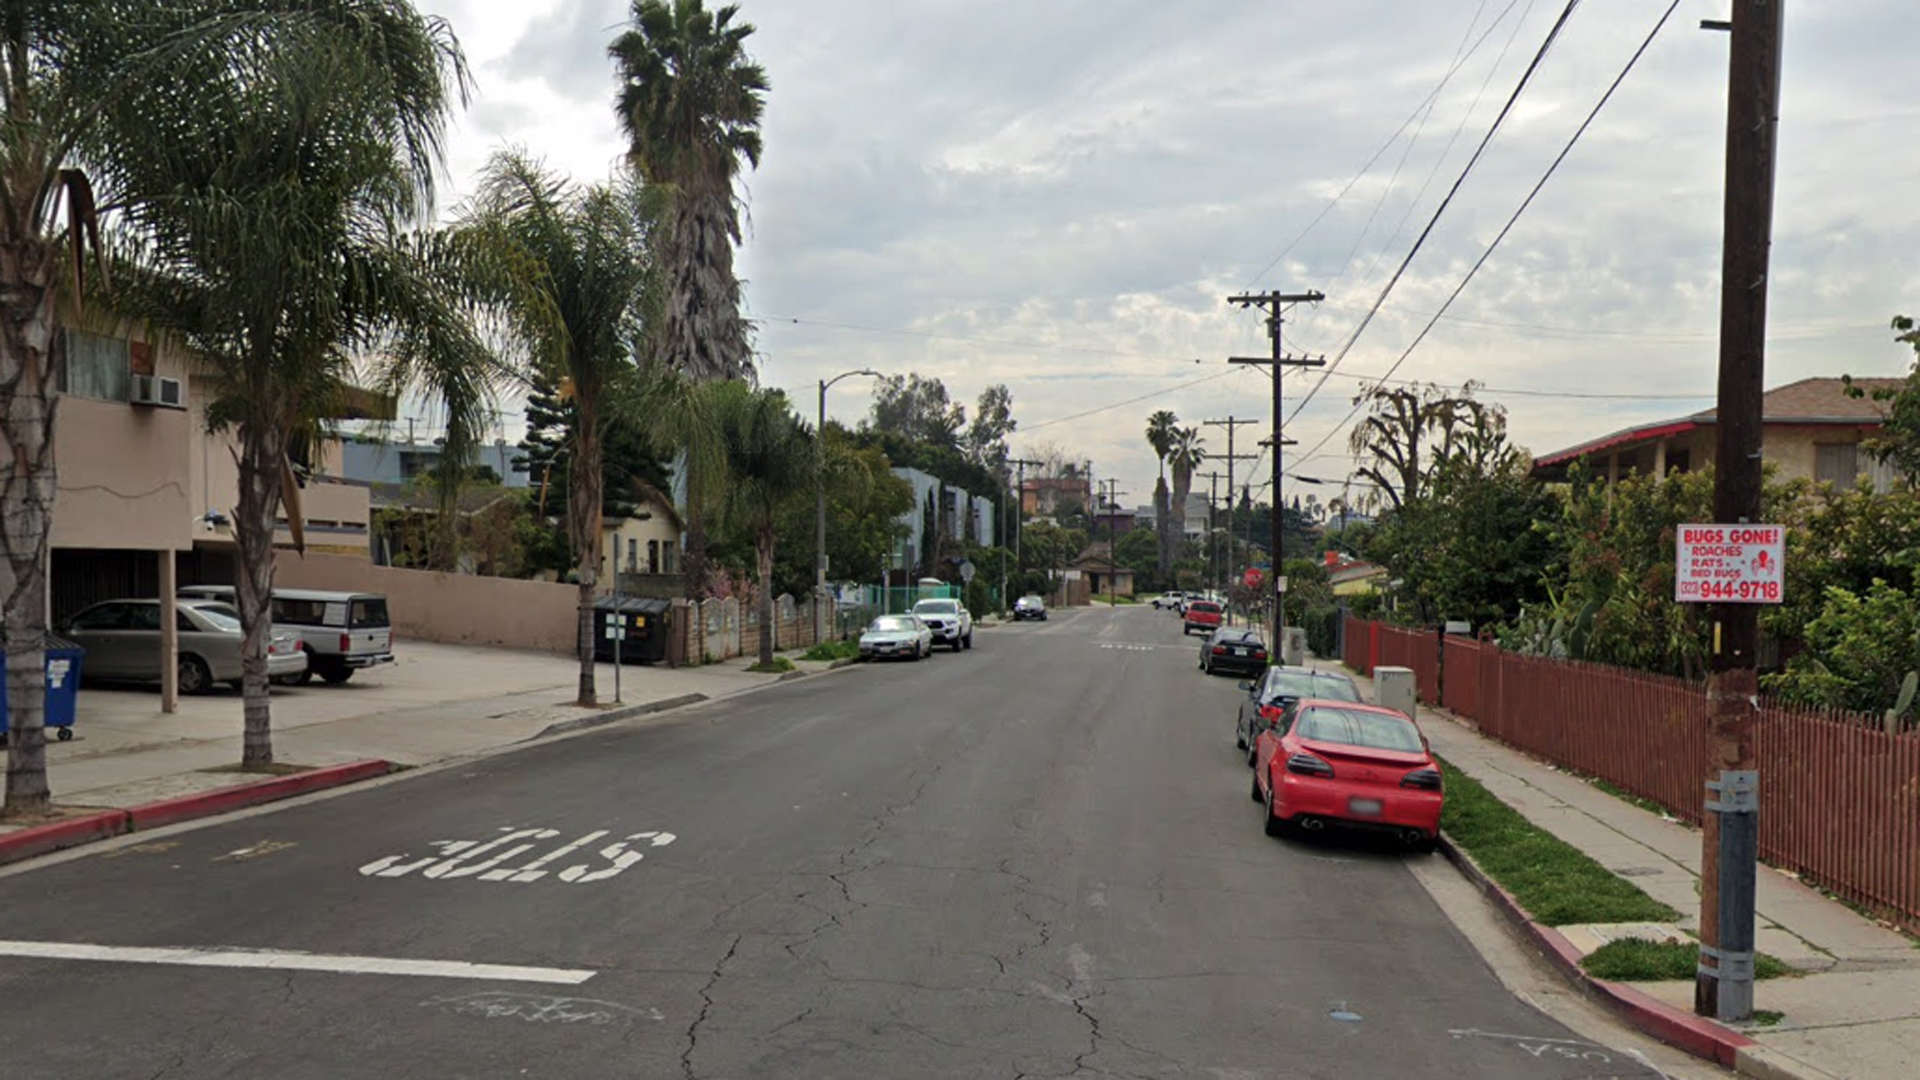 The 1700 block of South Rimpau Boulevard in Los Angeles Mid-City district, as viewed in a Google Street View image.